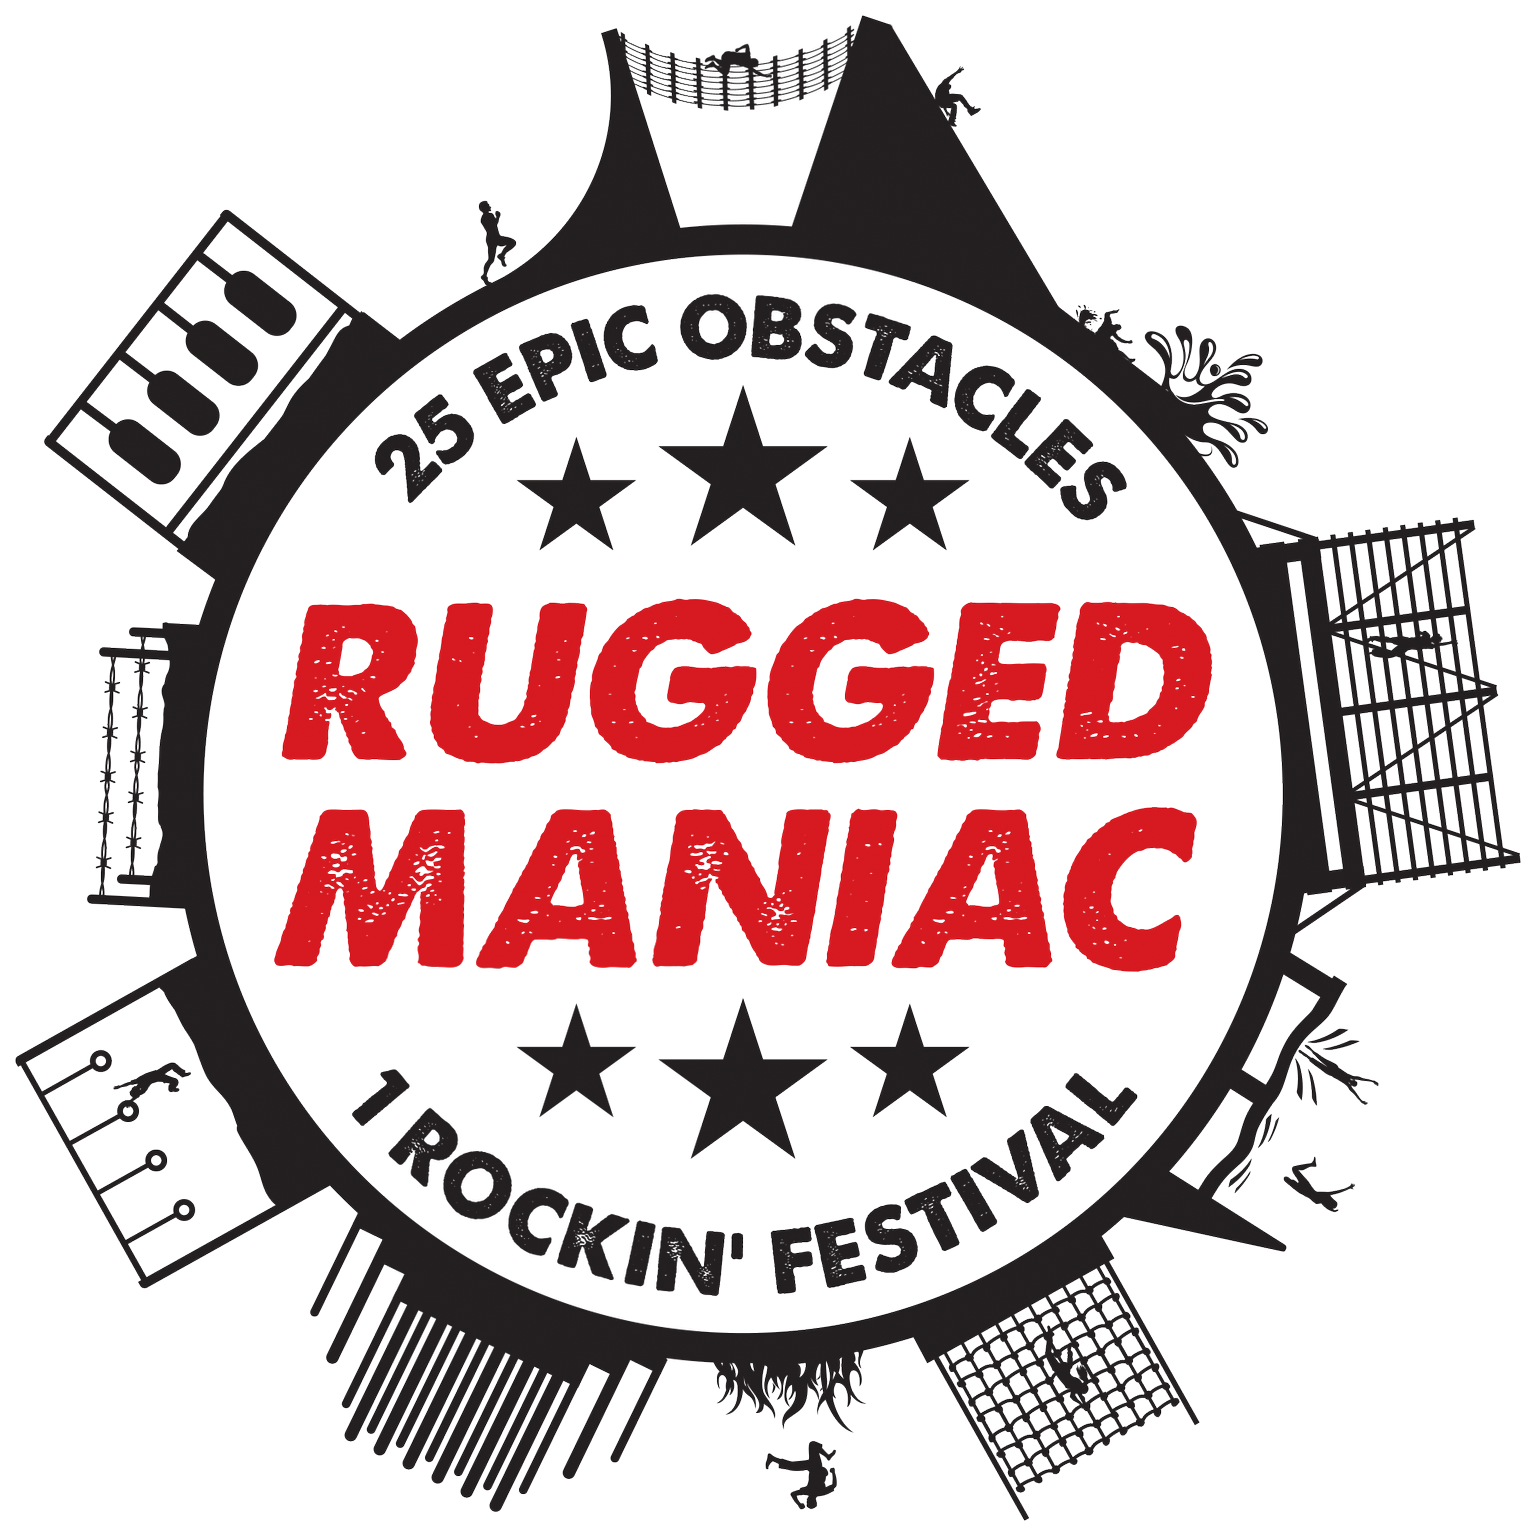 Phoenix Arizona Rugged Maniac Spring 2018